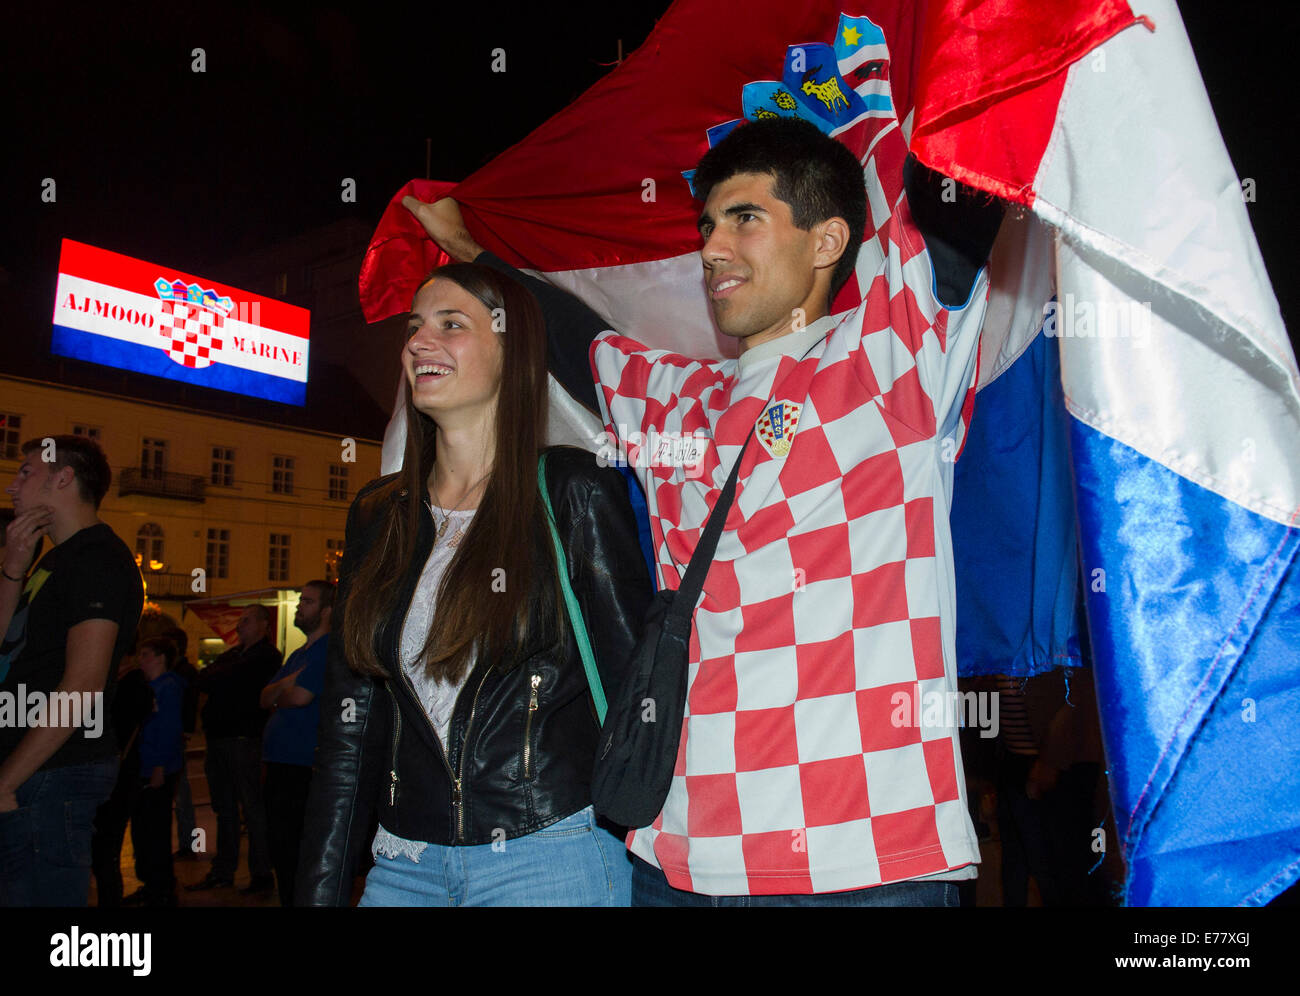 (140909) -- ZAGREB, Sept. 9, 2014 (Xinhua) -- Croatian tennis fans celebrate while watching the televised US Open - Stock Image